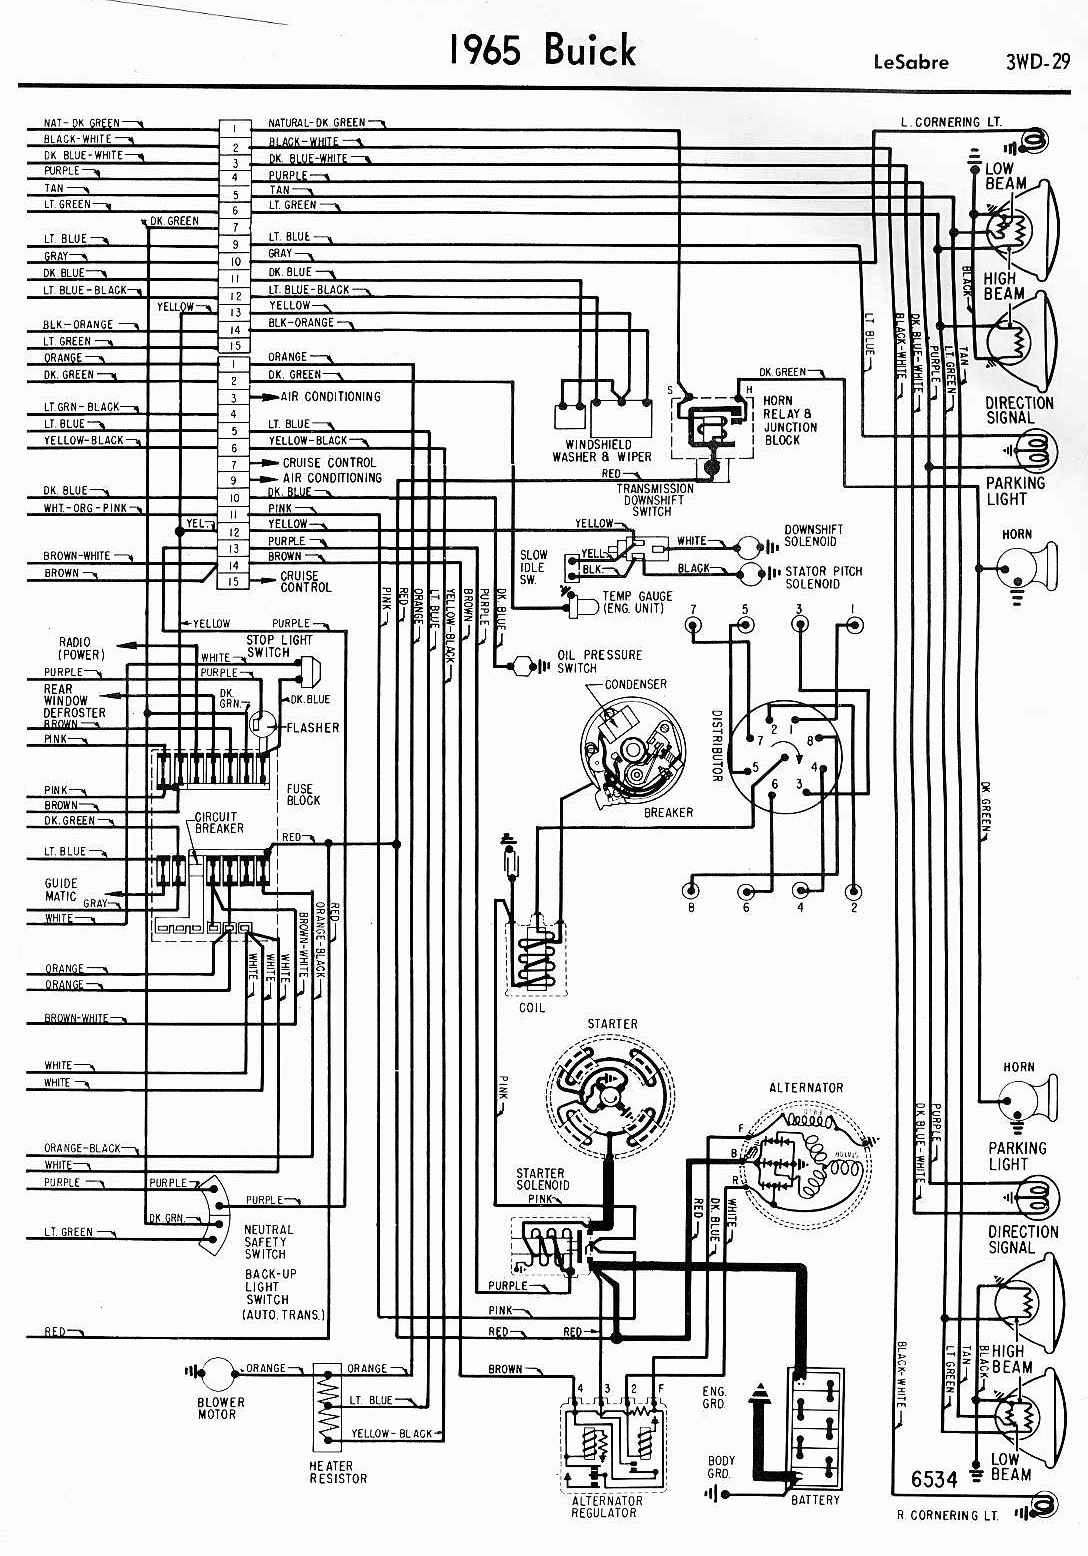 Complete Wiring Diagram Of 1938 Buick Roadmaster